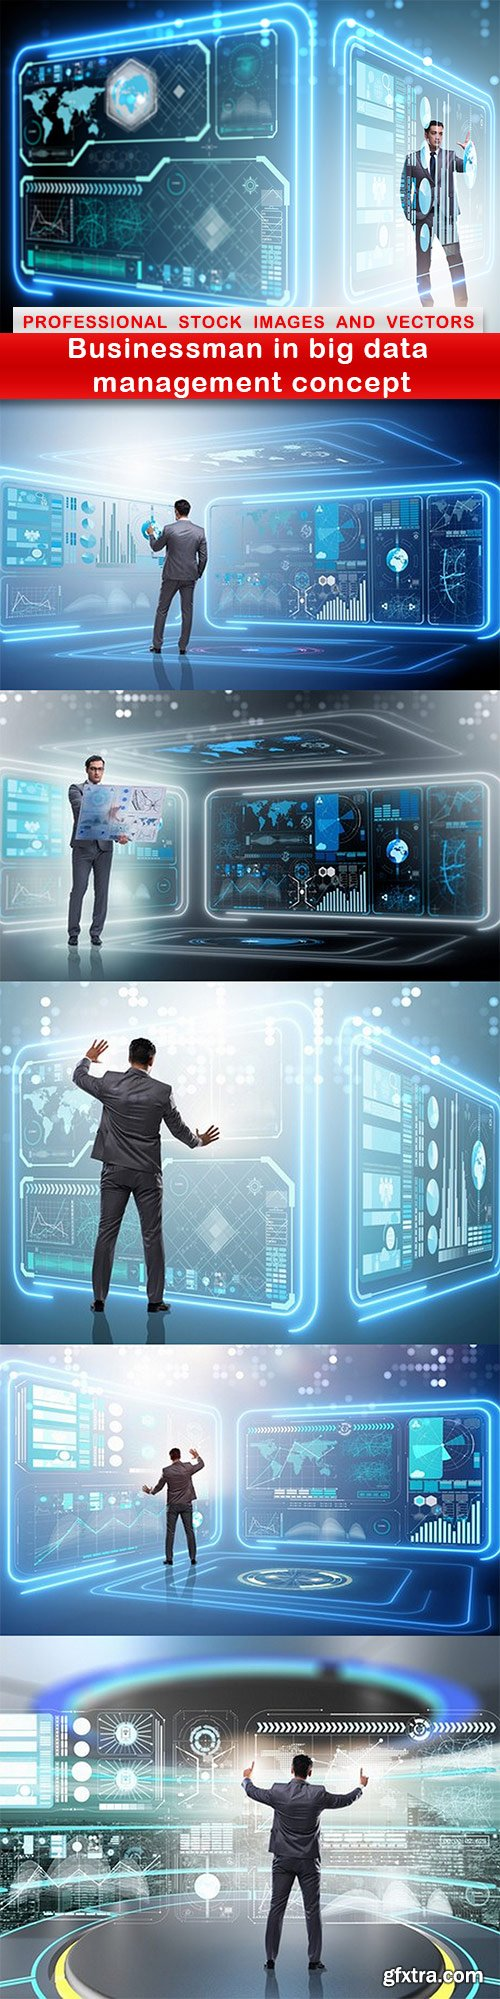 Businessman in big data management concept - 6 UHQ JPEG